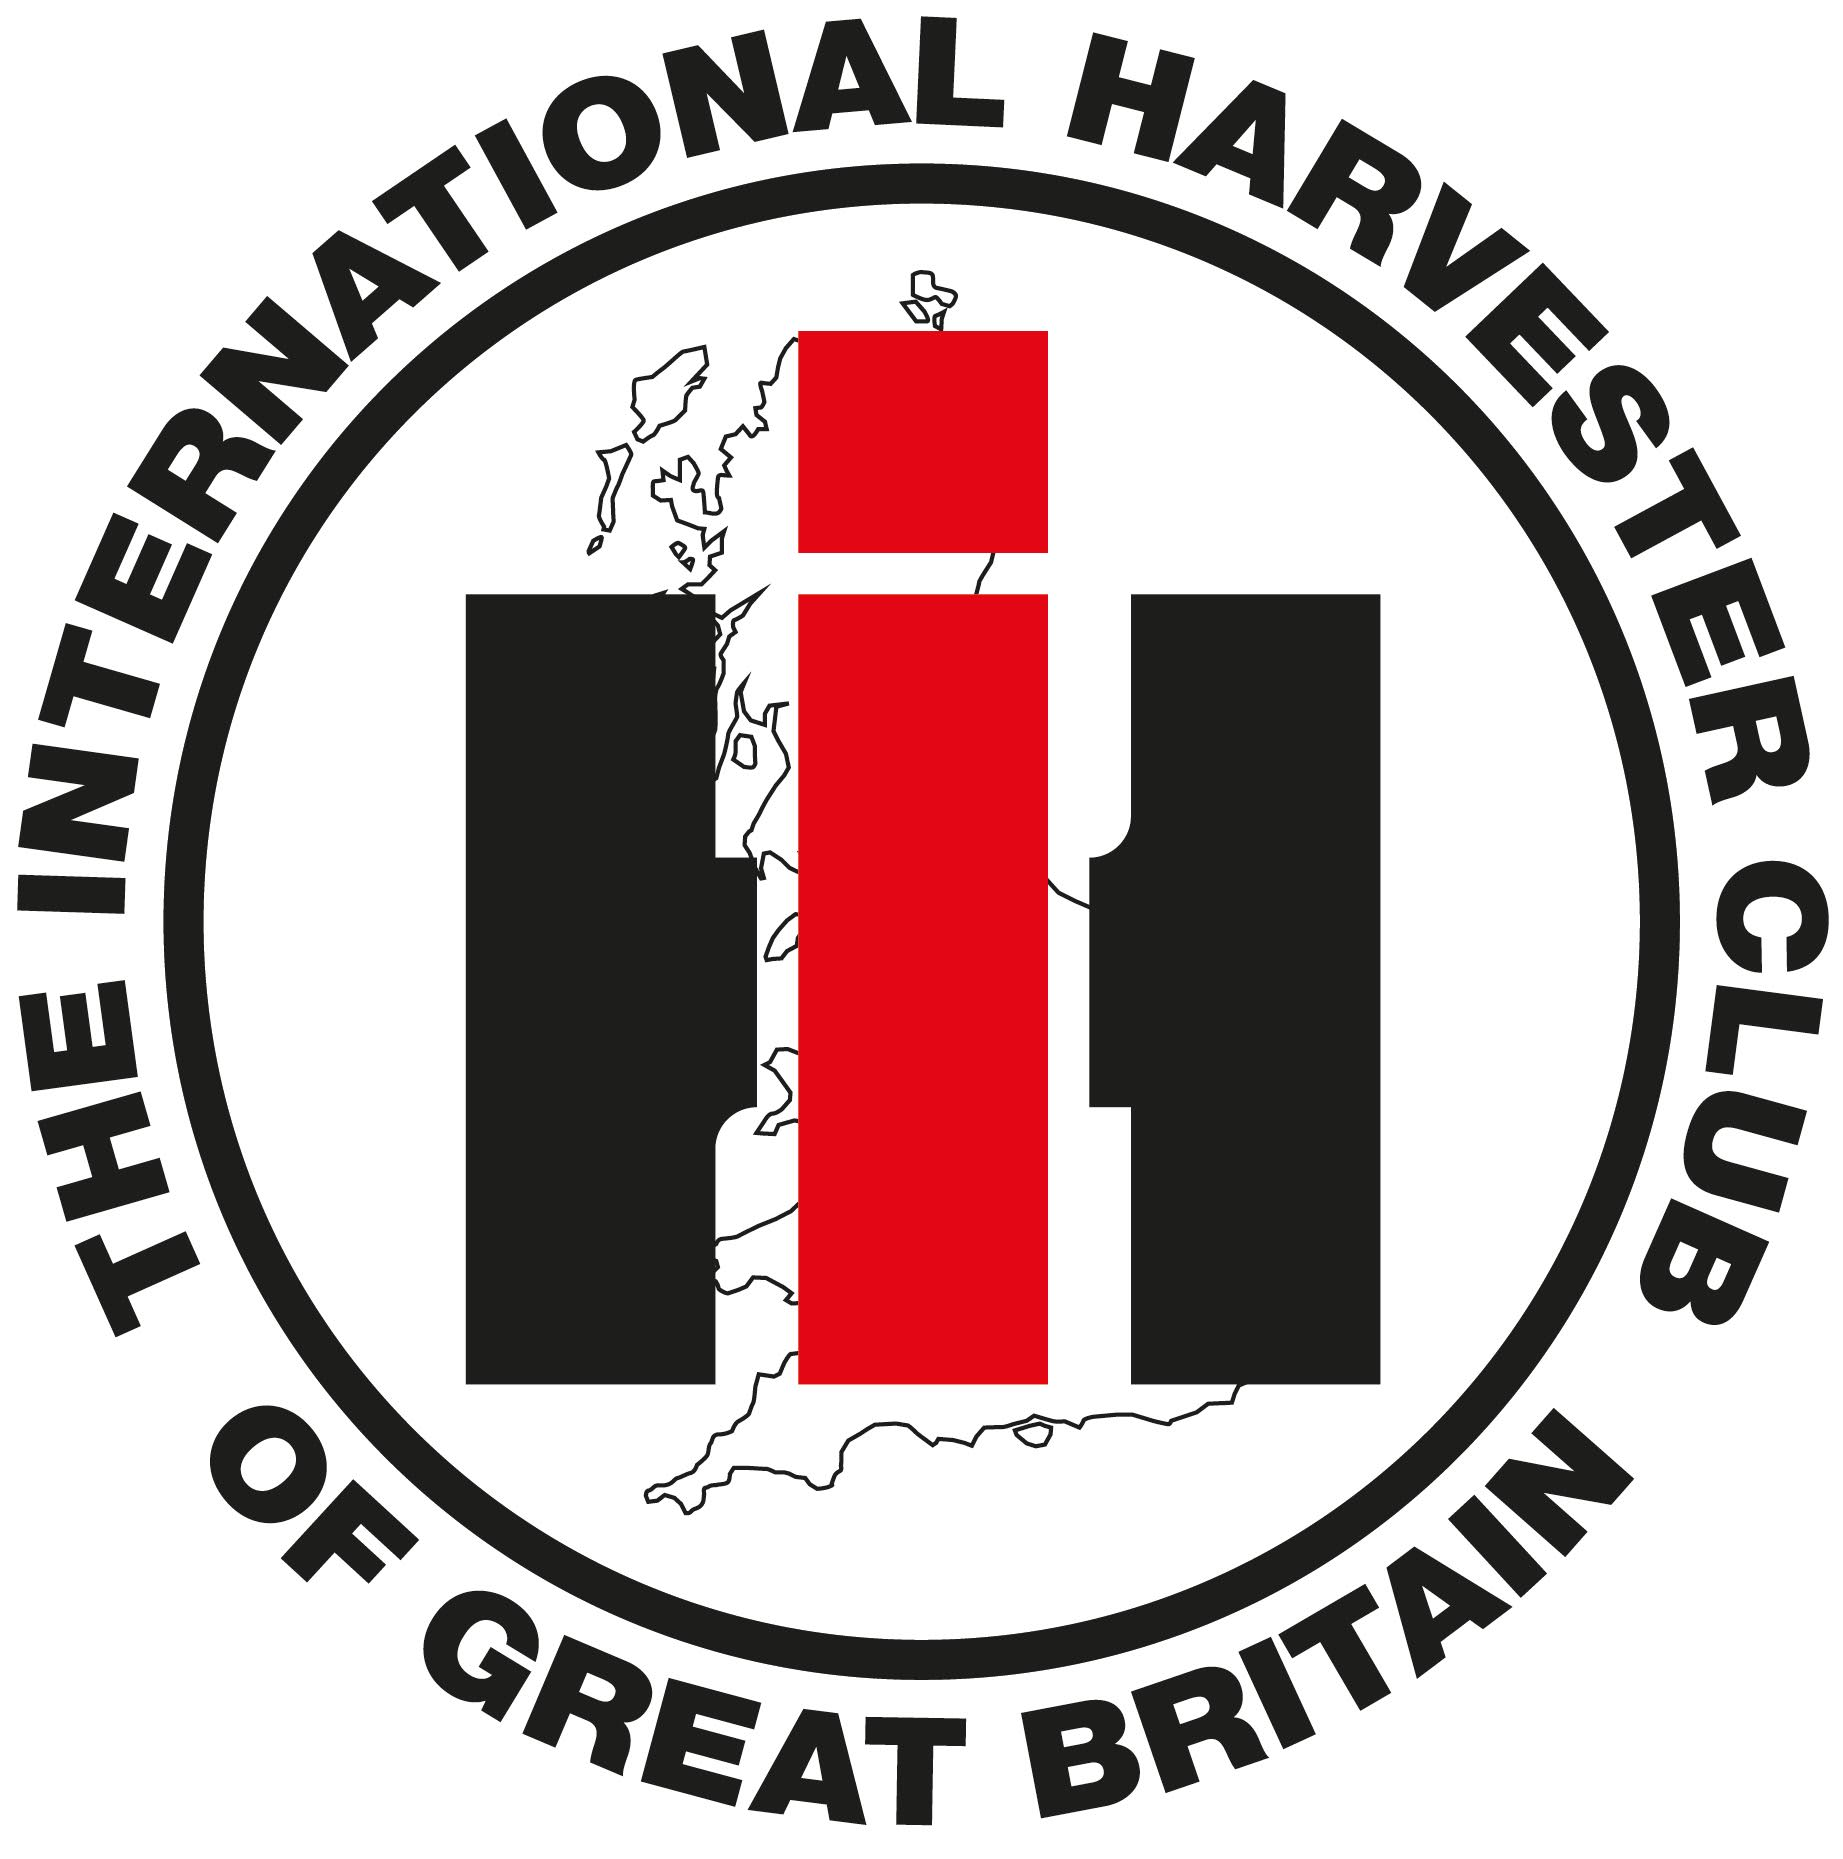 International Harvester Club GB